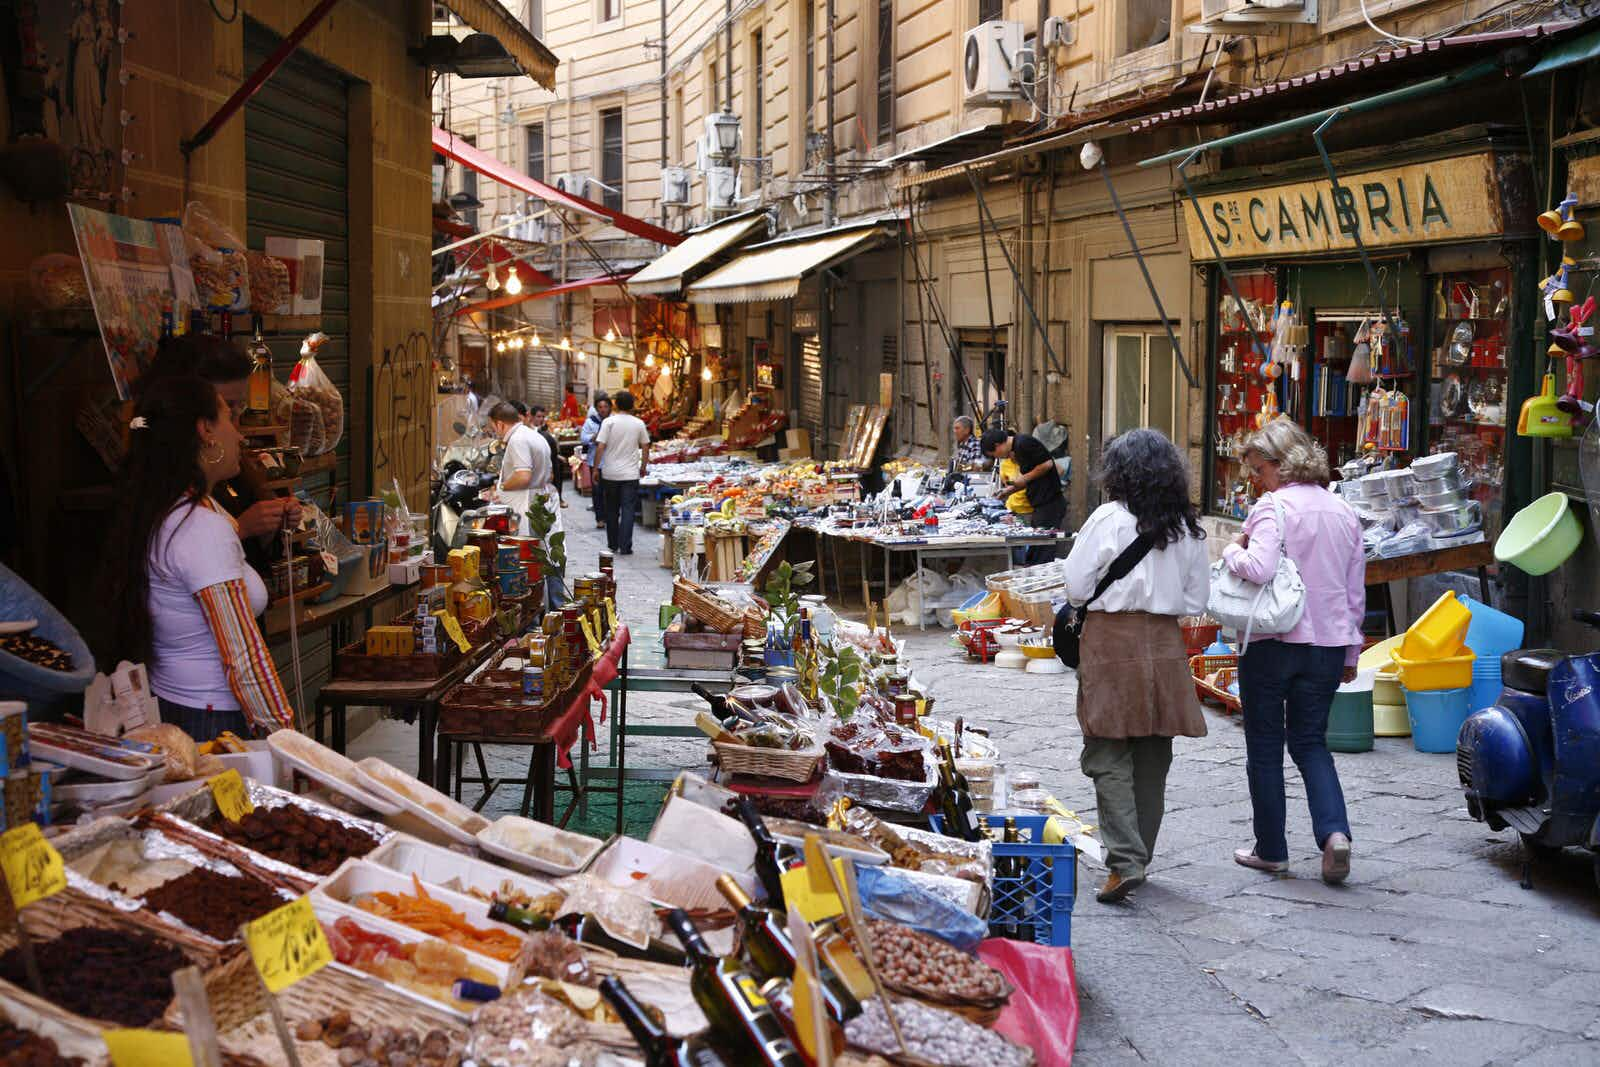 Palermo: Sicily's multicultural capital